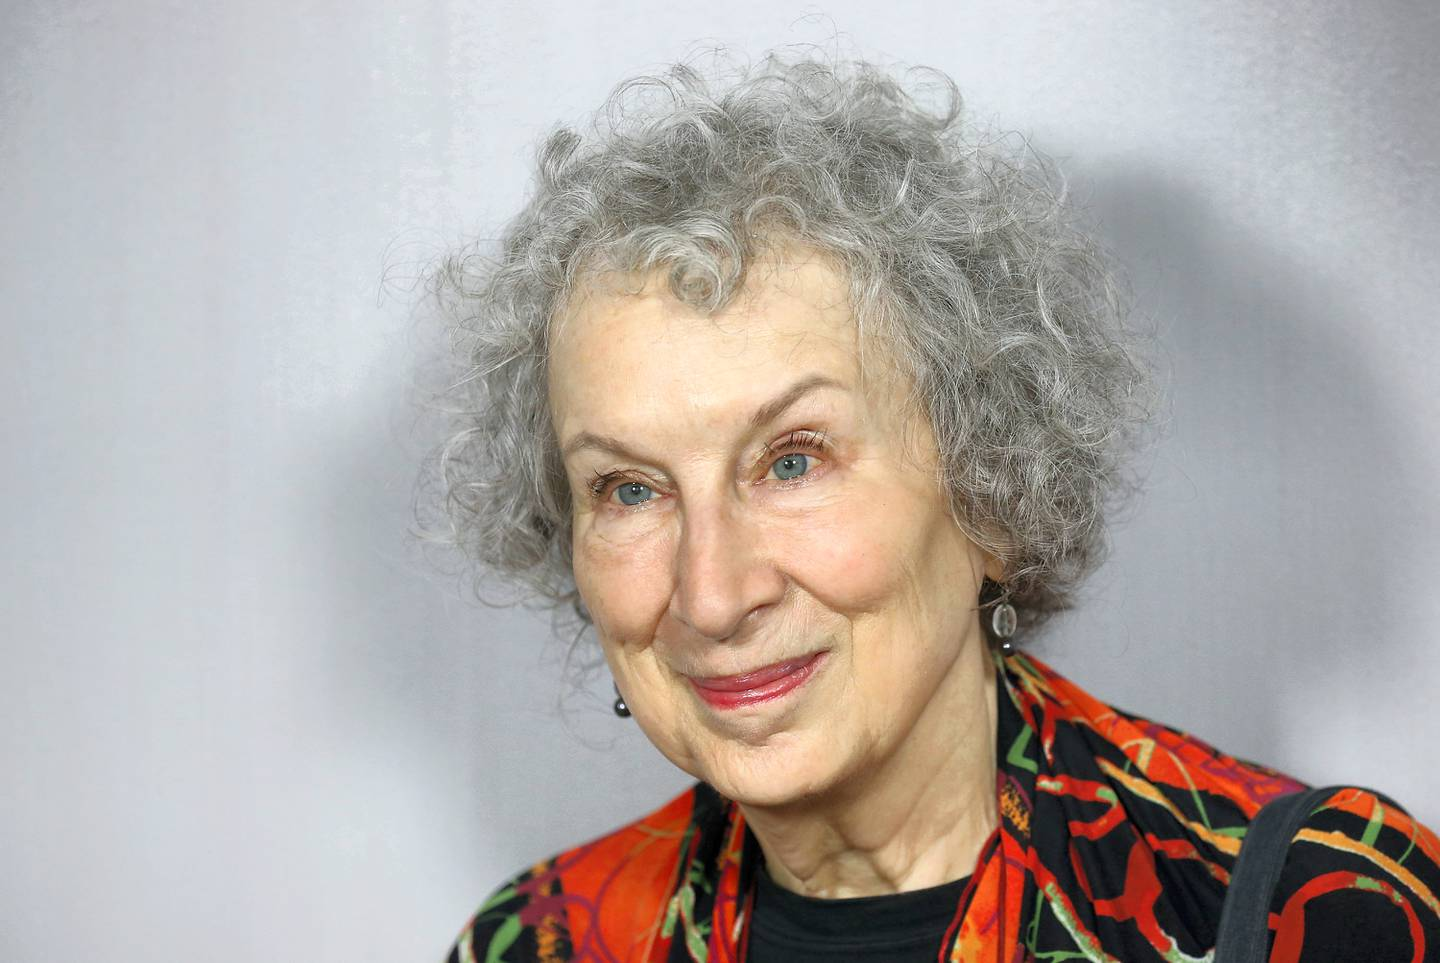 LOS ANGELES, CA - OCTOBER 14:  Margaret Atwood attends the 2018 Hammer Museum Gala In The Garden held on October 14, 2018 in Los Angeles, California.  (Photo by Michael Tran/FilmMagic)